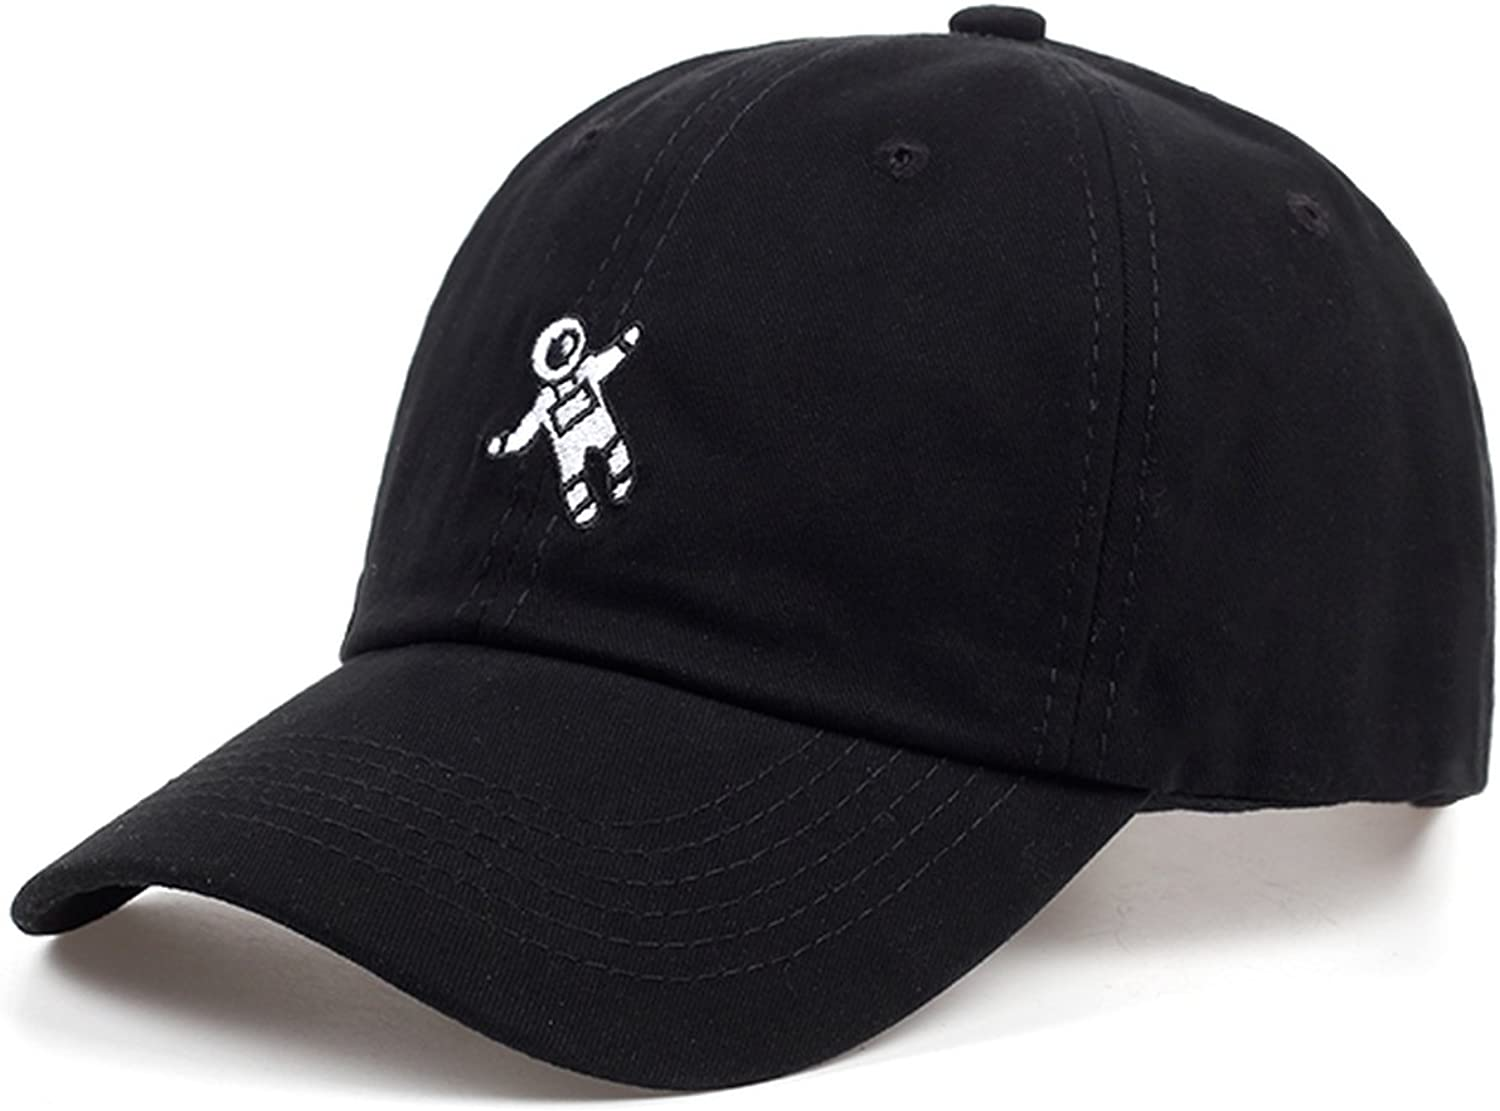 Ron Kite Unisex Fashion dad hat Astronaut emberoidery Baseball Cap 4 Colors Available Hats hat caps